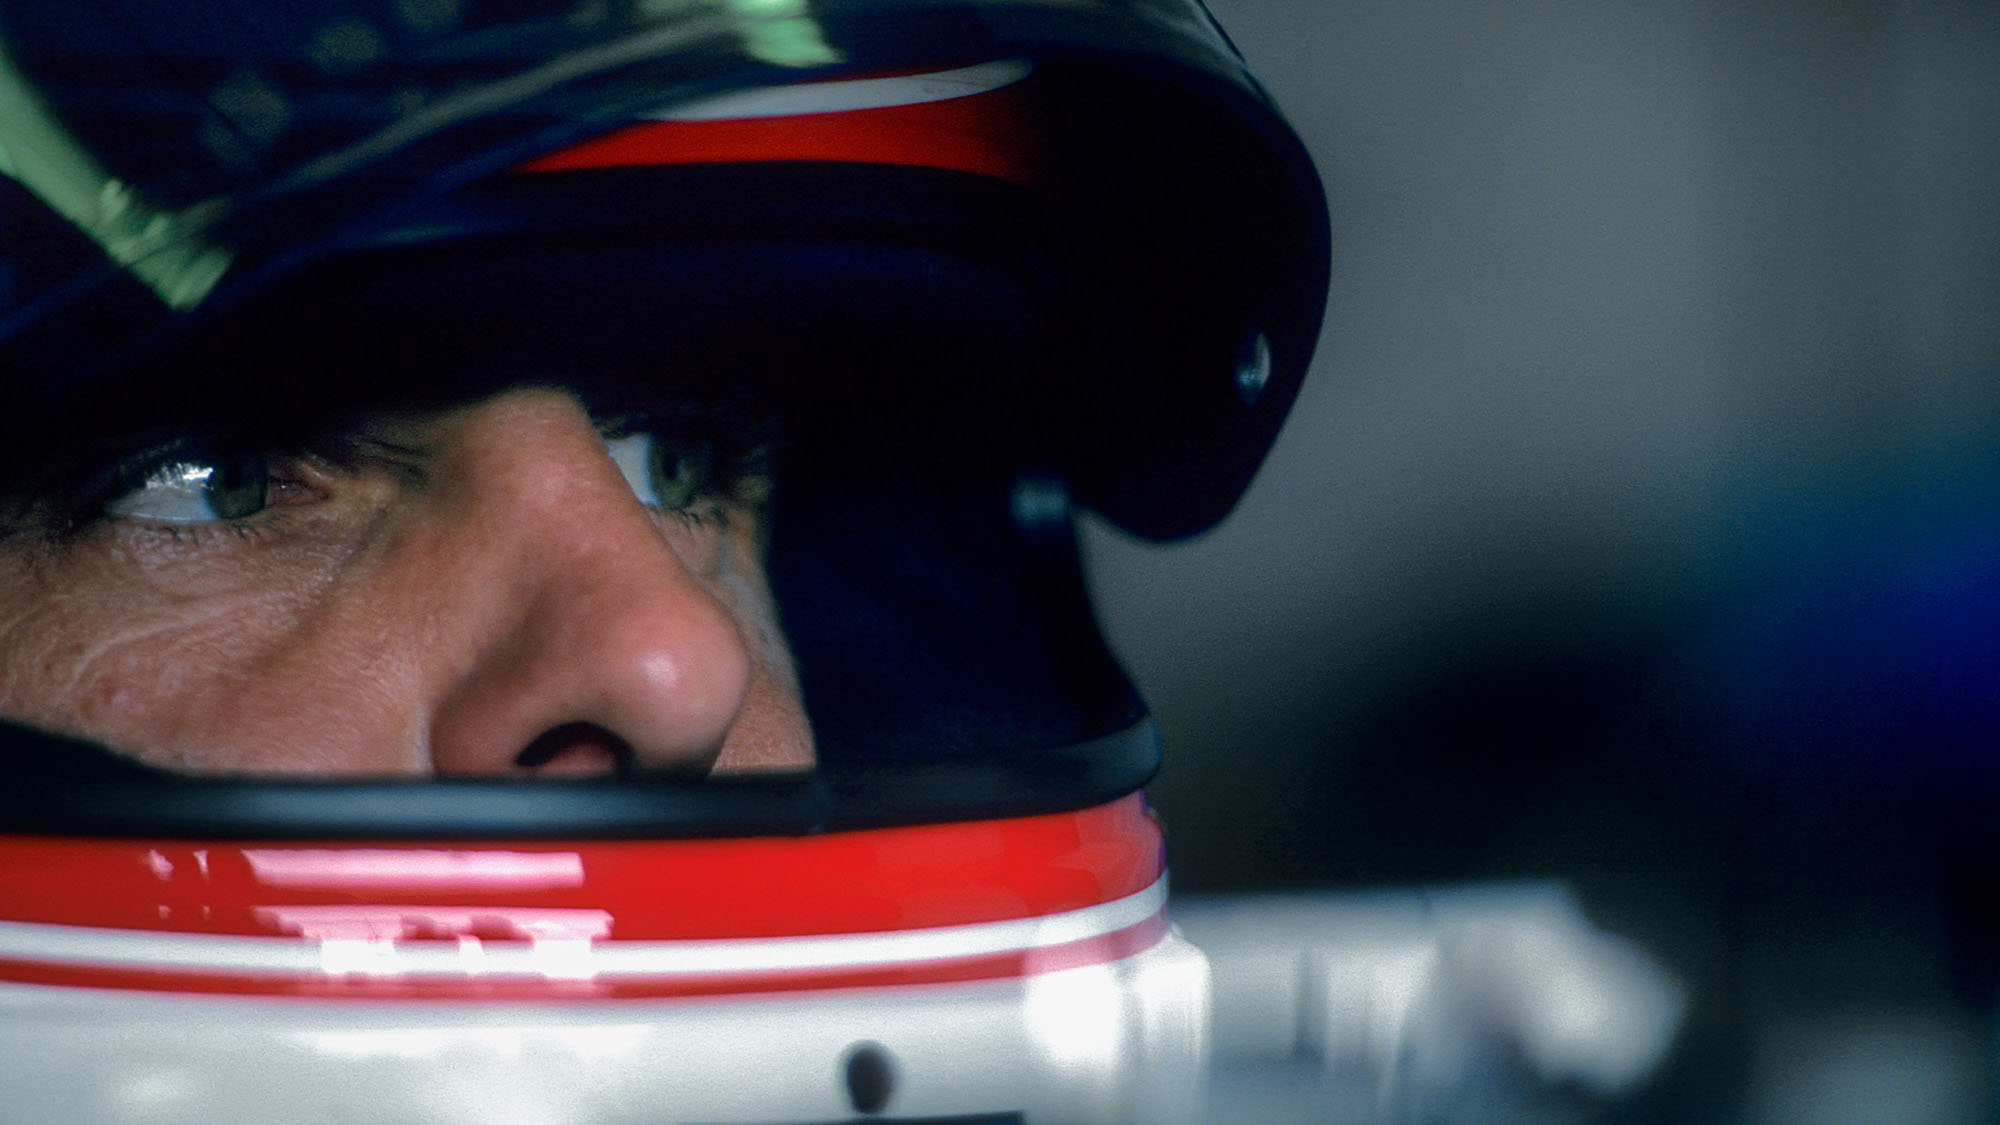 Roland Ratzenberger, Simtek-Ford S941, Grand Prix of San Marino, Autodromo Enzo e Dino Ferrari, Imola, 01 May 1994. Roland Razenberger during practice for the 1994 San Marino Grand Prix in Imola, where he was killed during qualifying. (Photo by Paul-Henri Cahier/Getty Images)